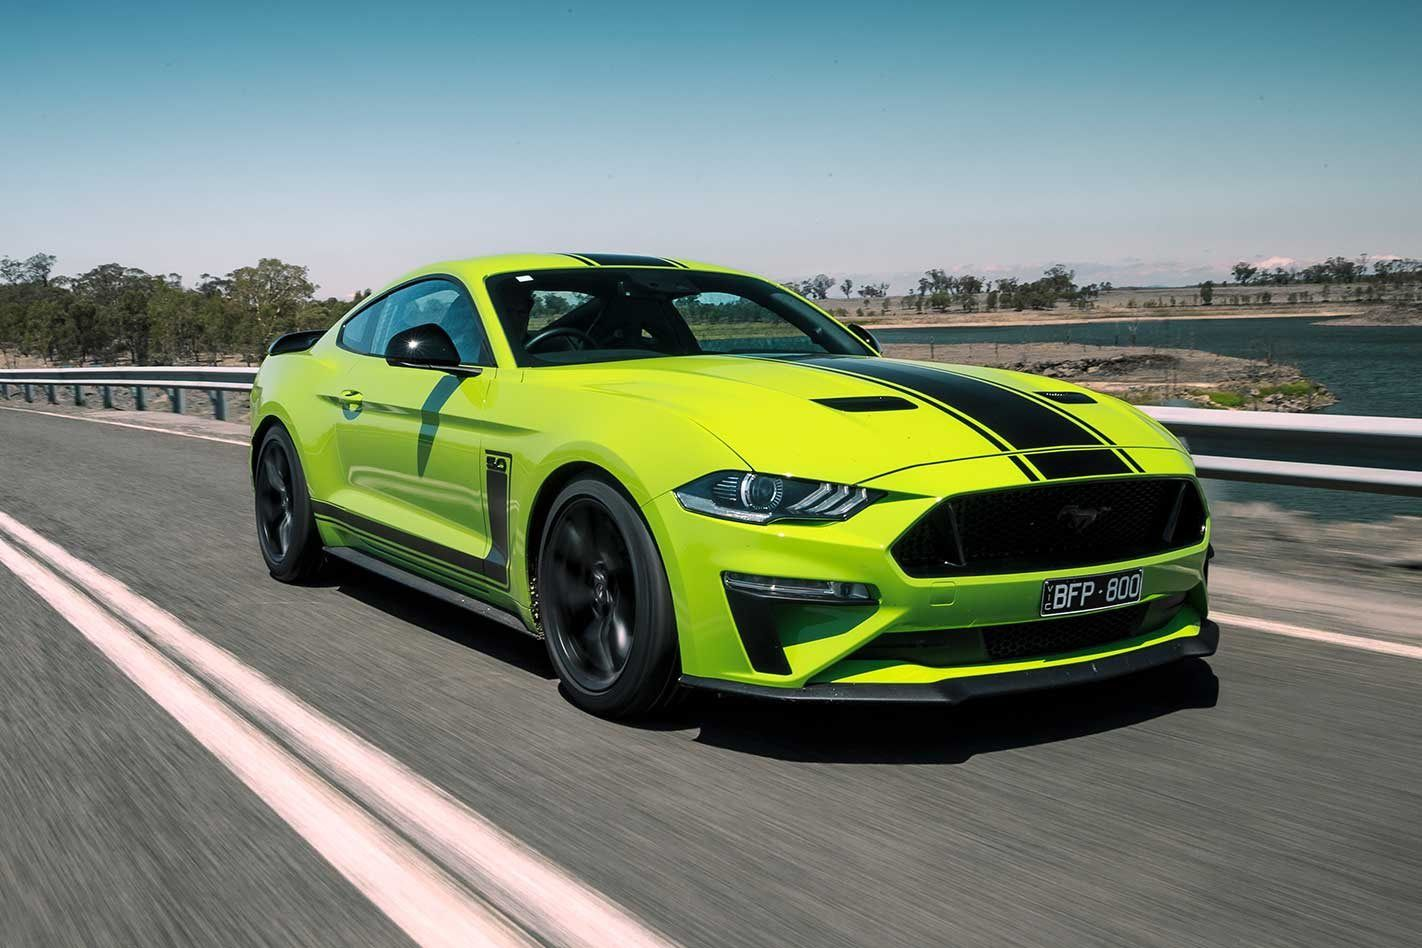 2020 Ford Mustang Gt Coupe 0 To 60